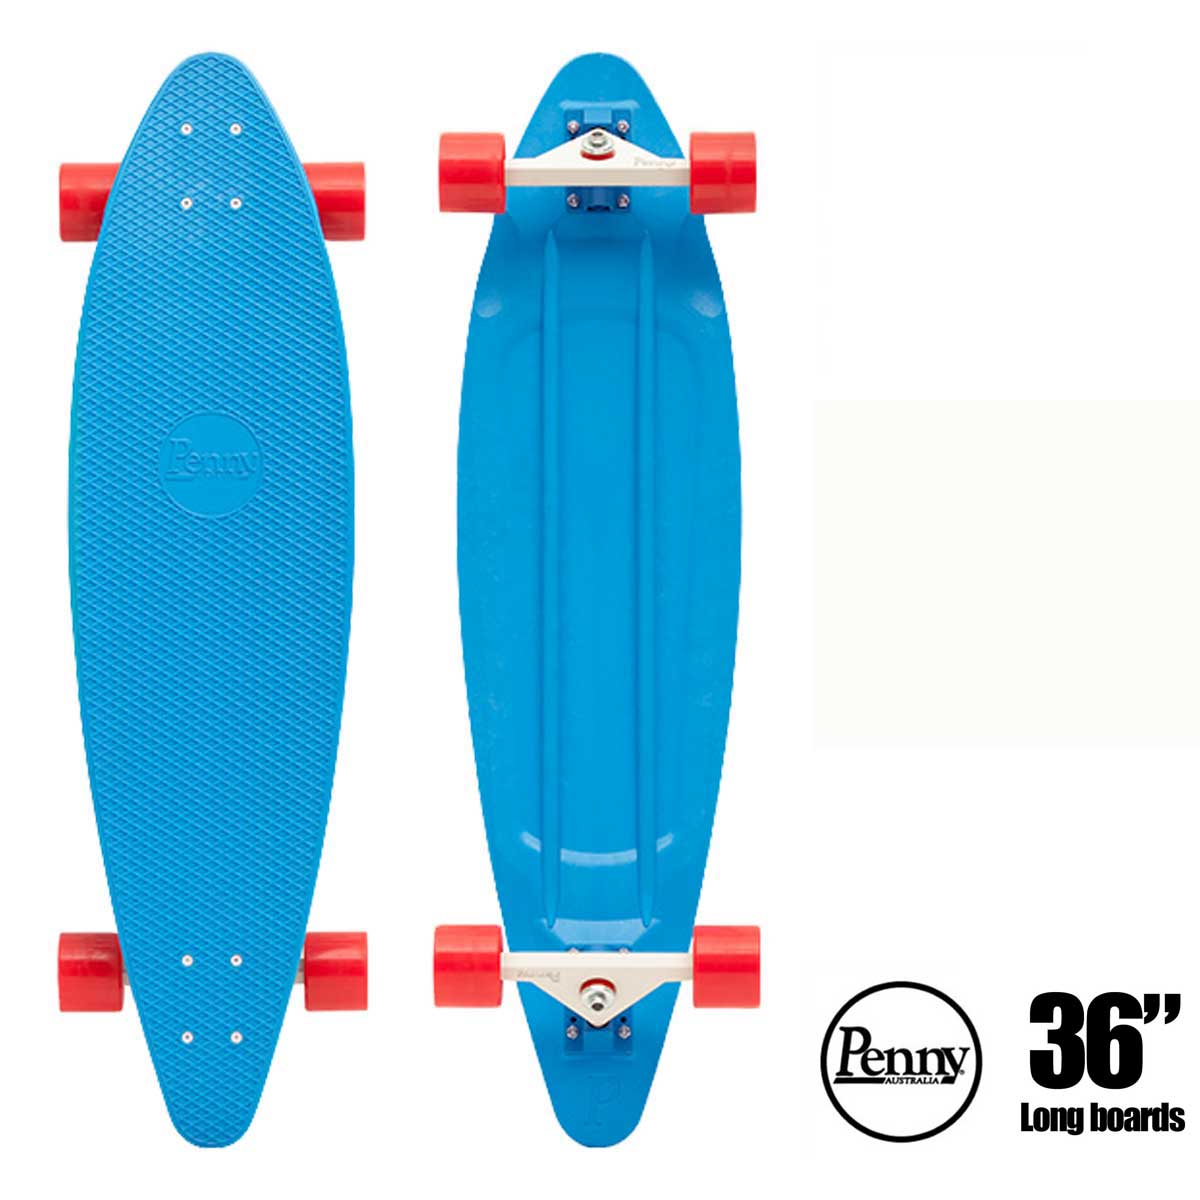 Panny skateboards Long boards 36インチ ペニースケートボード ロングボード